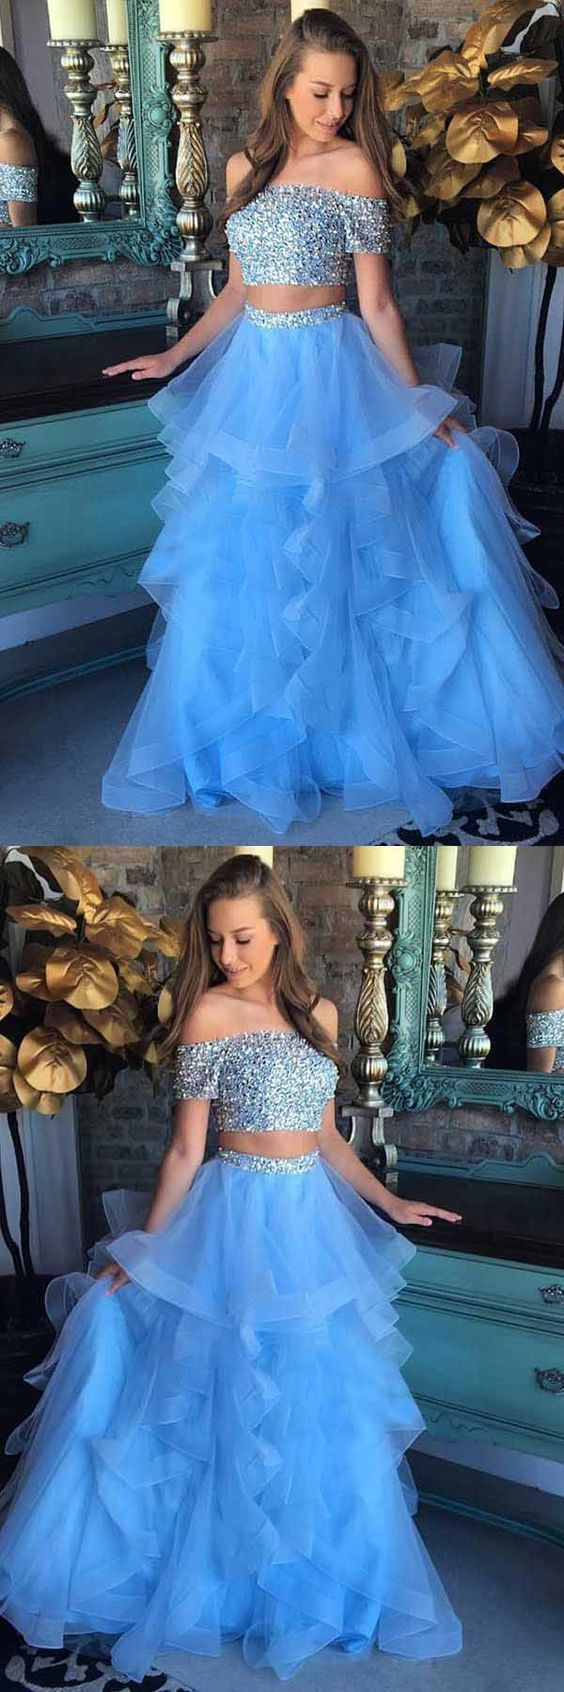 Sky Blue 2 Piece Prom Dresses Off Shoulder Short Sleeve Beaded Tulle Layers